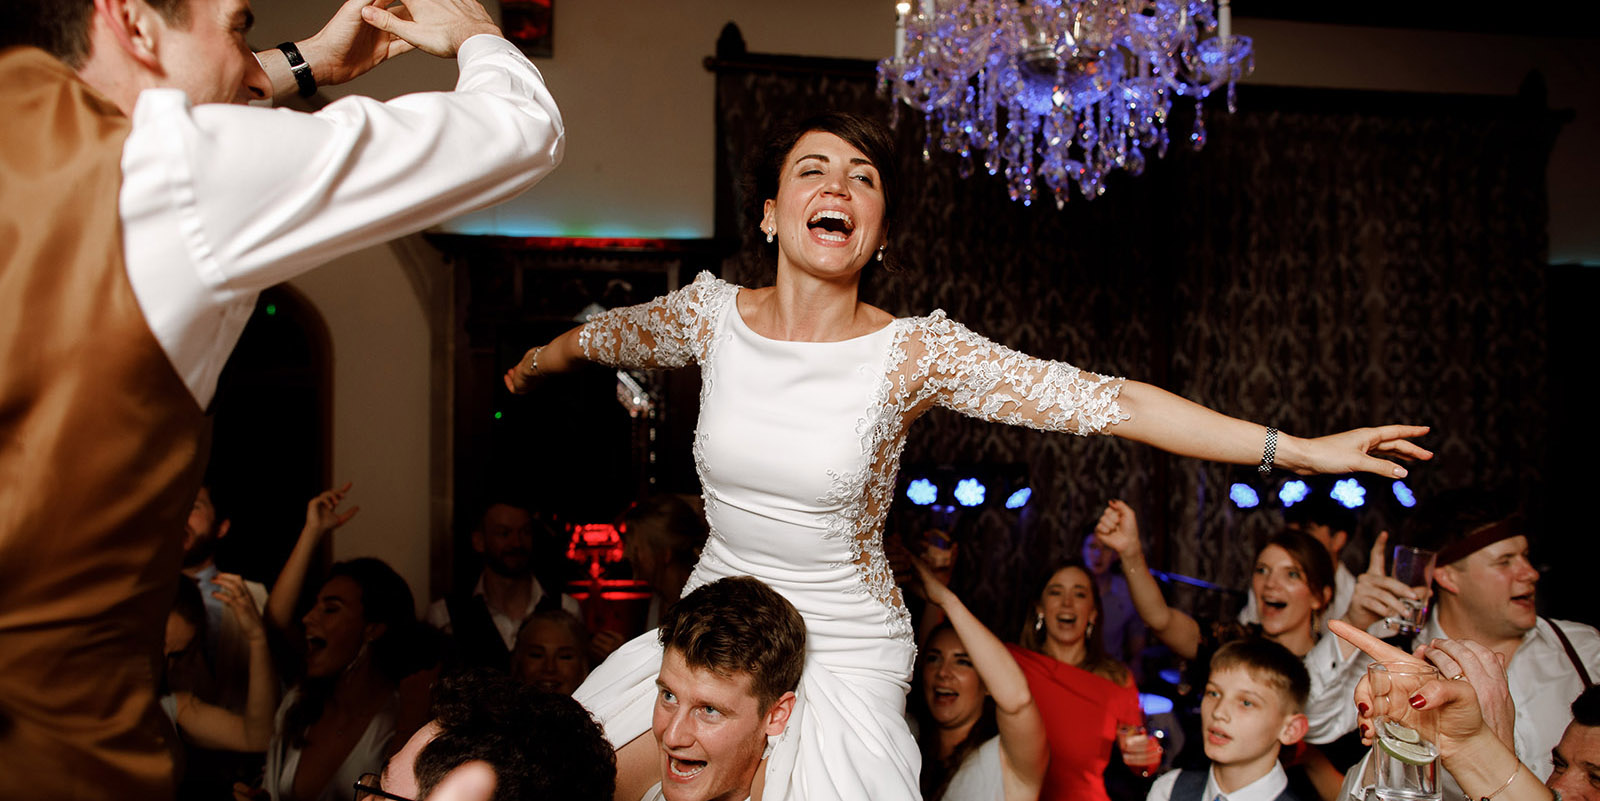 bride on grooms shoulders during evening reception at Huntsham court wedding